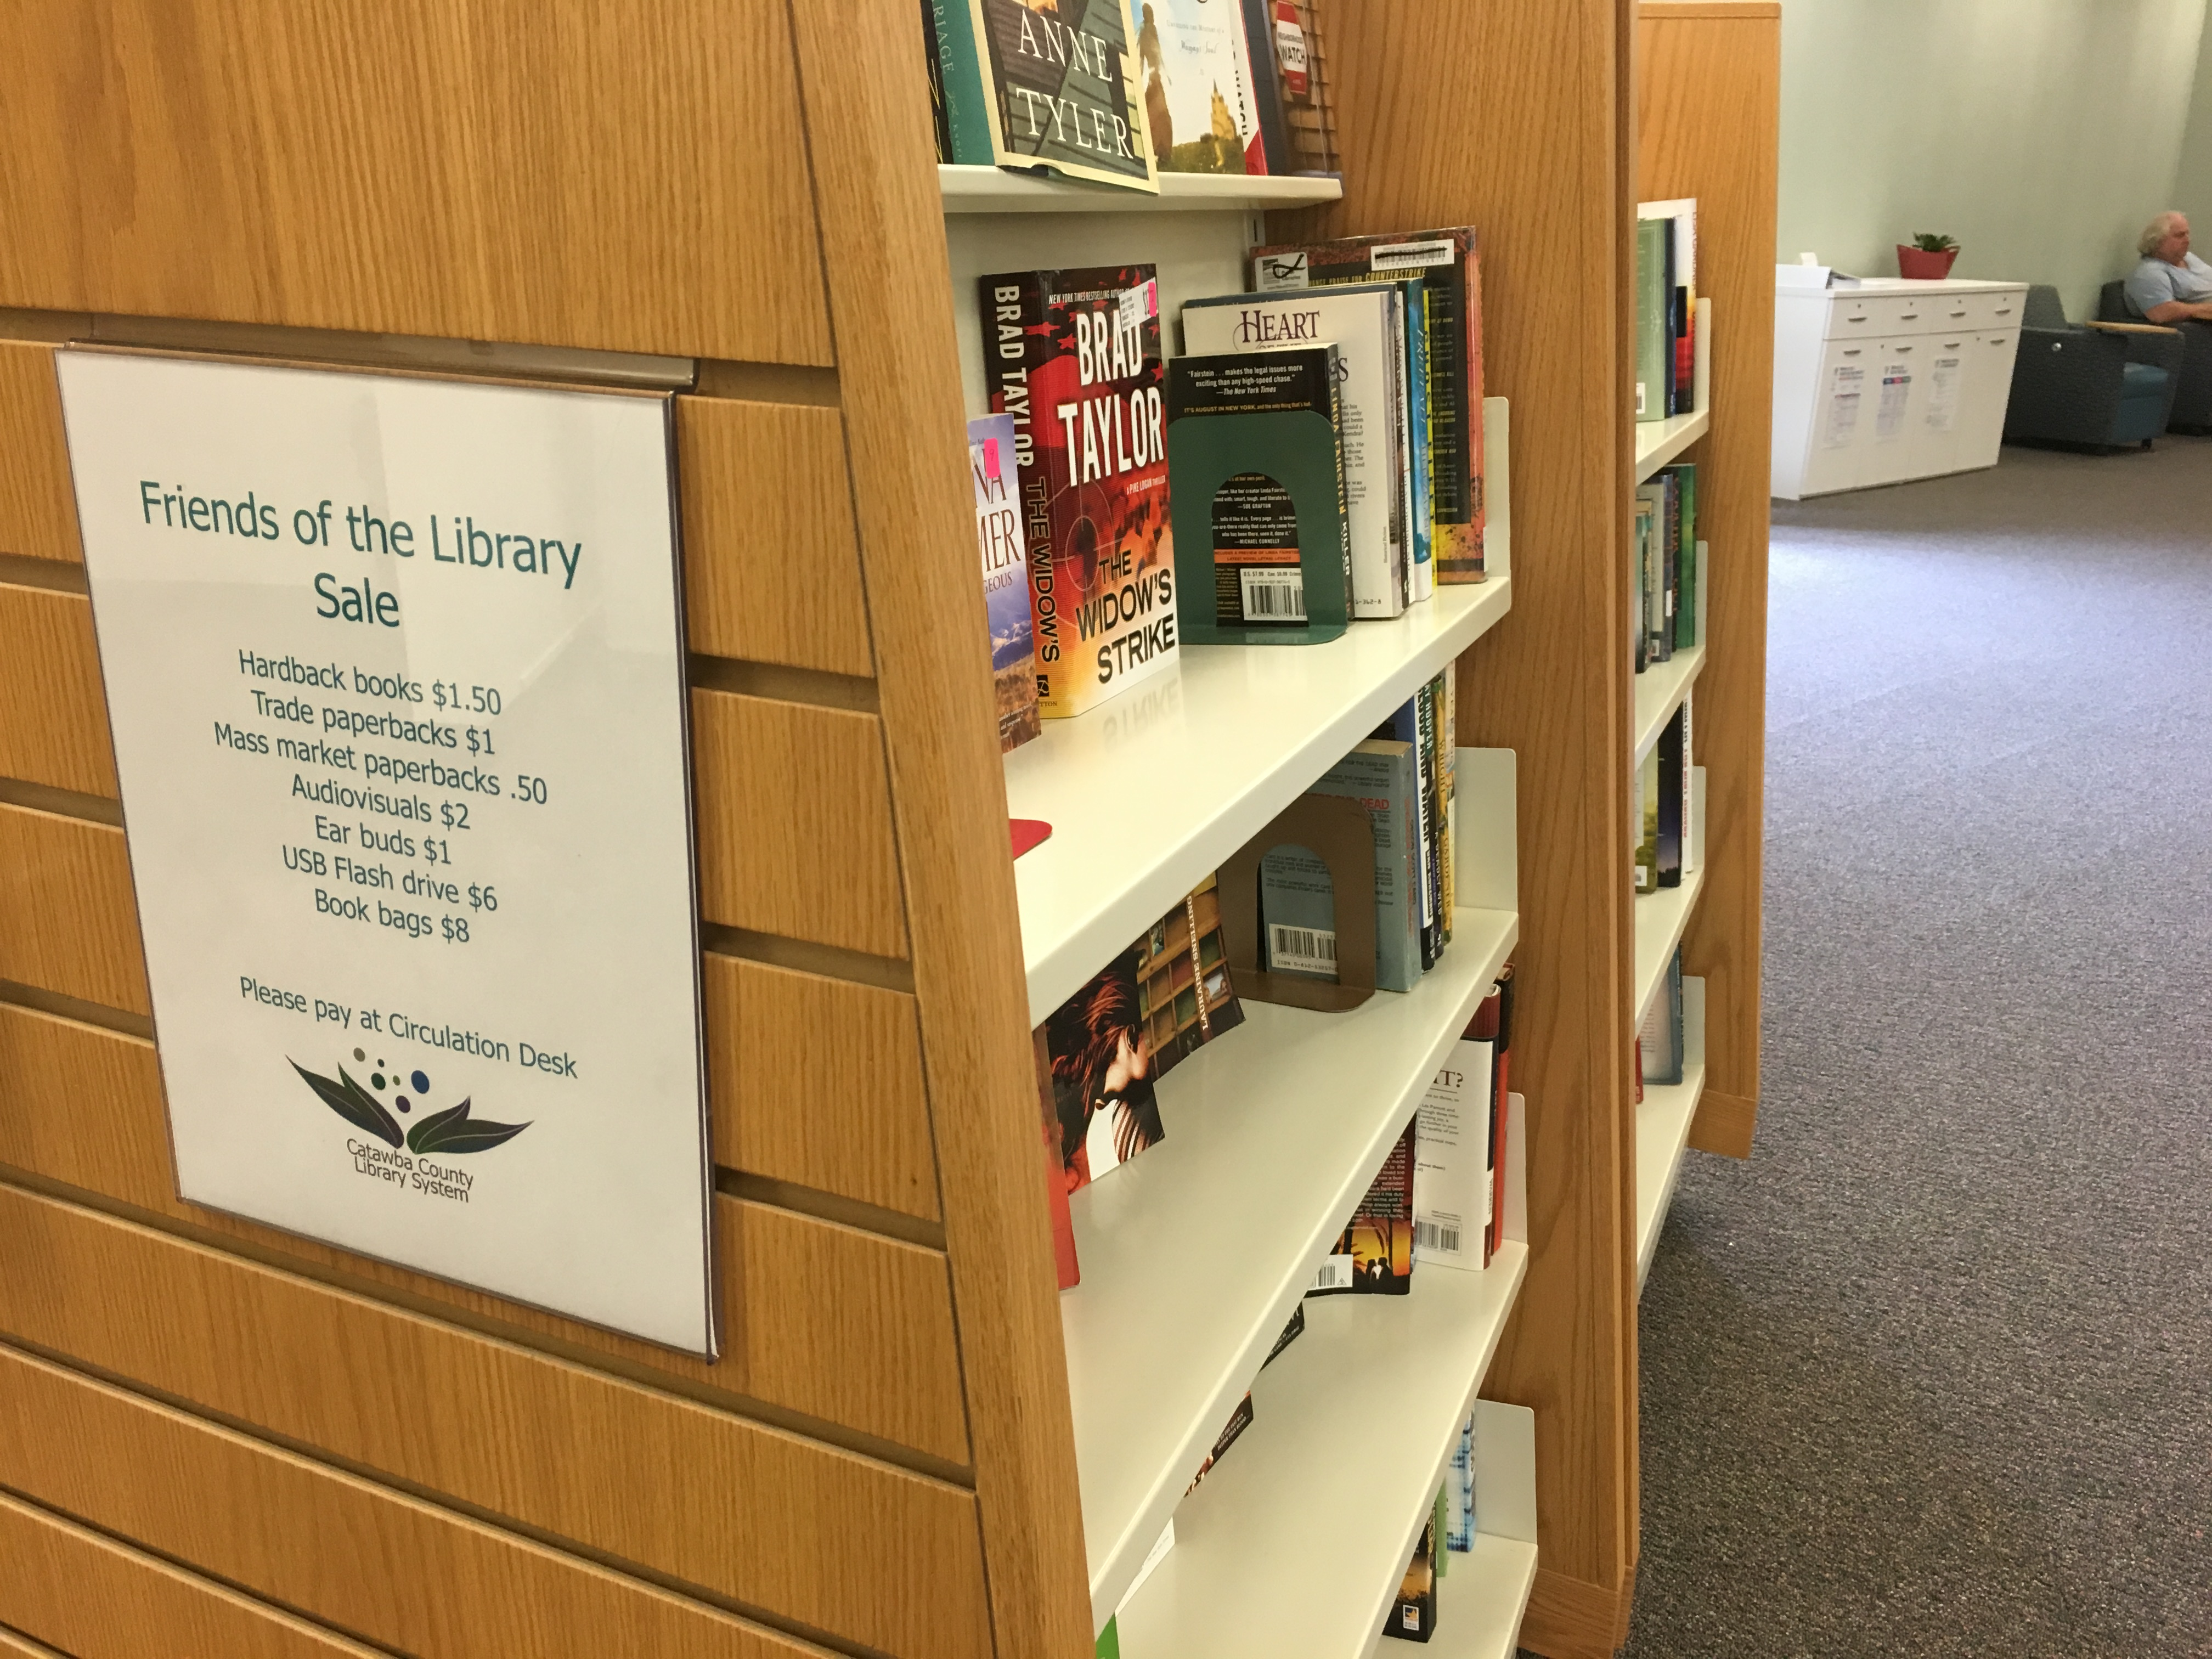 Friends of Library Offer Ongoing Book Sales